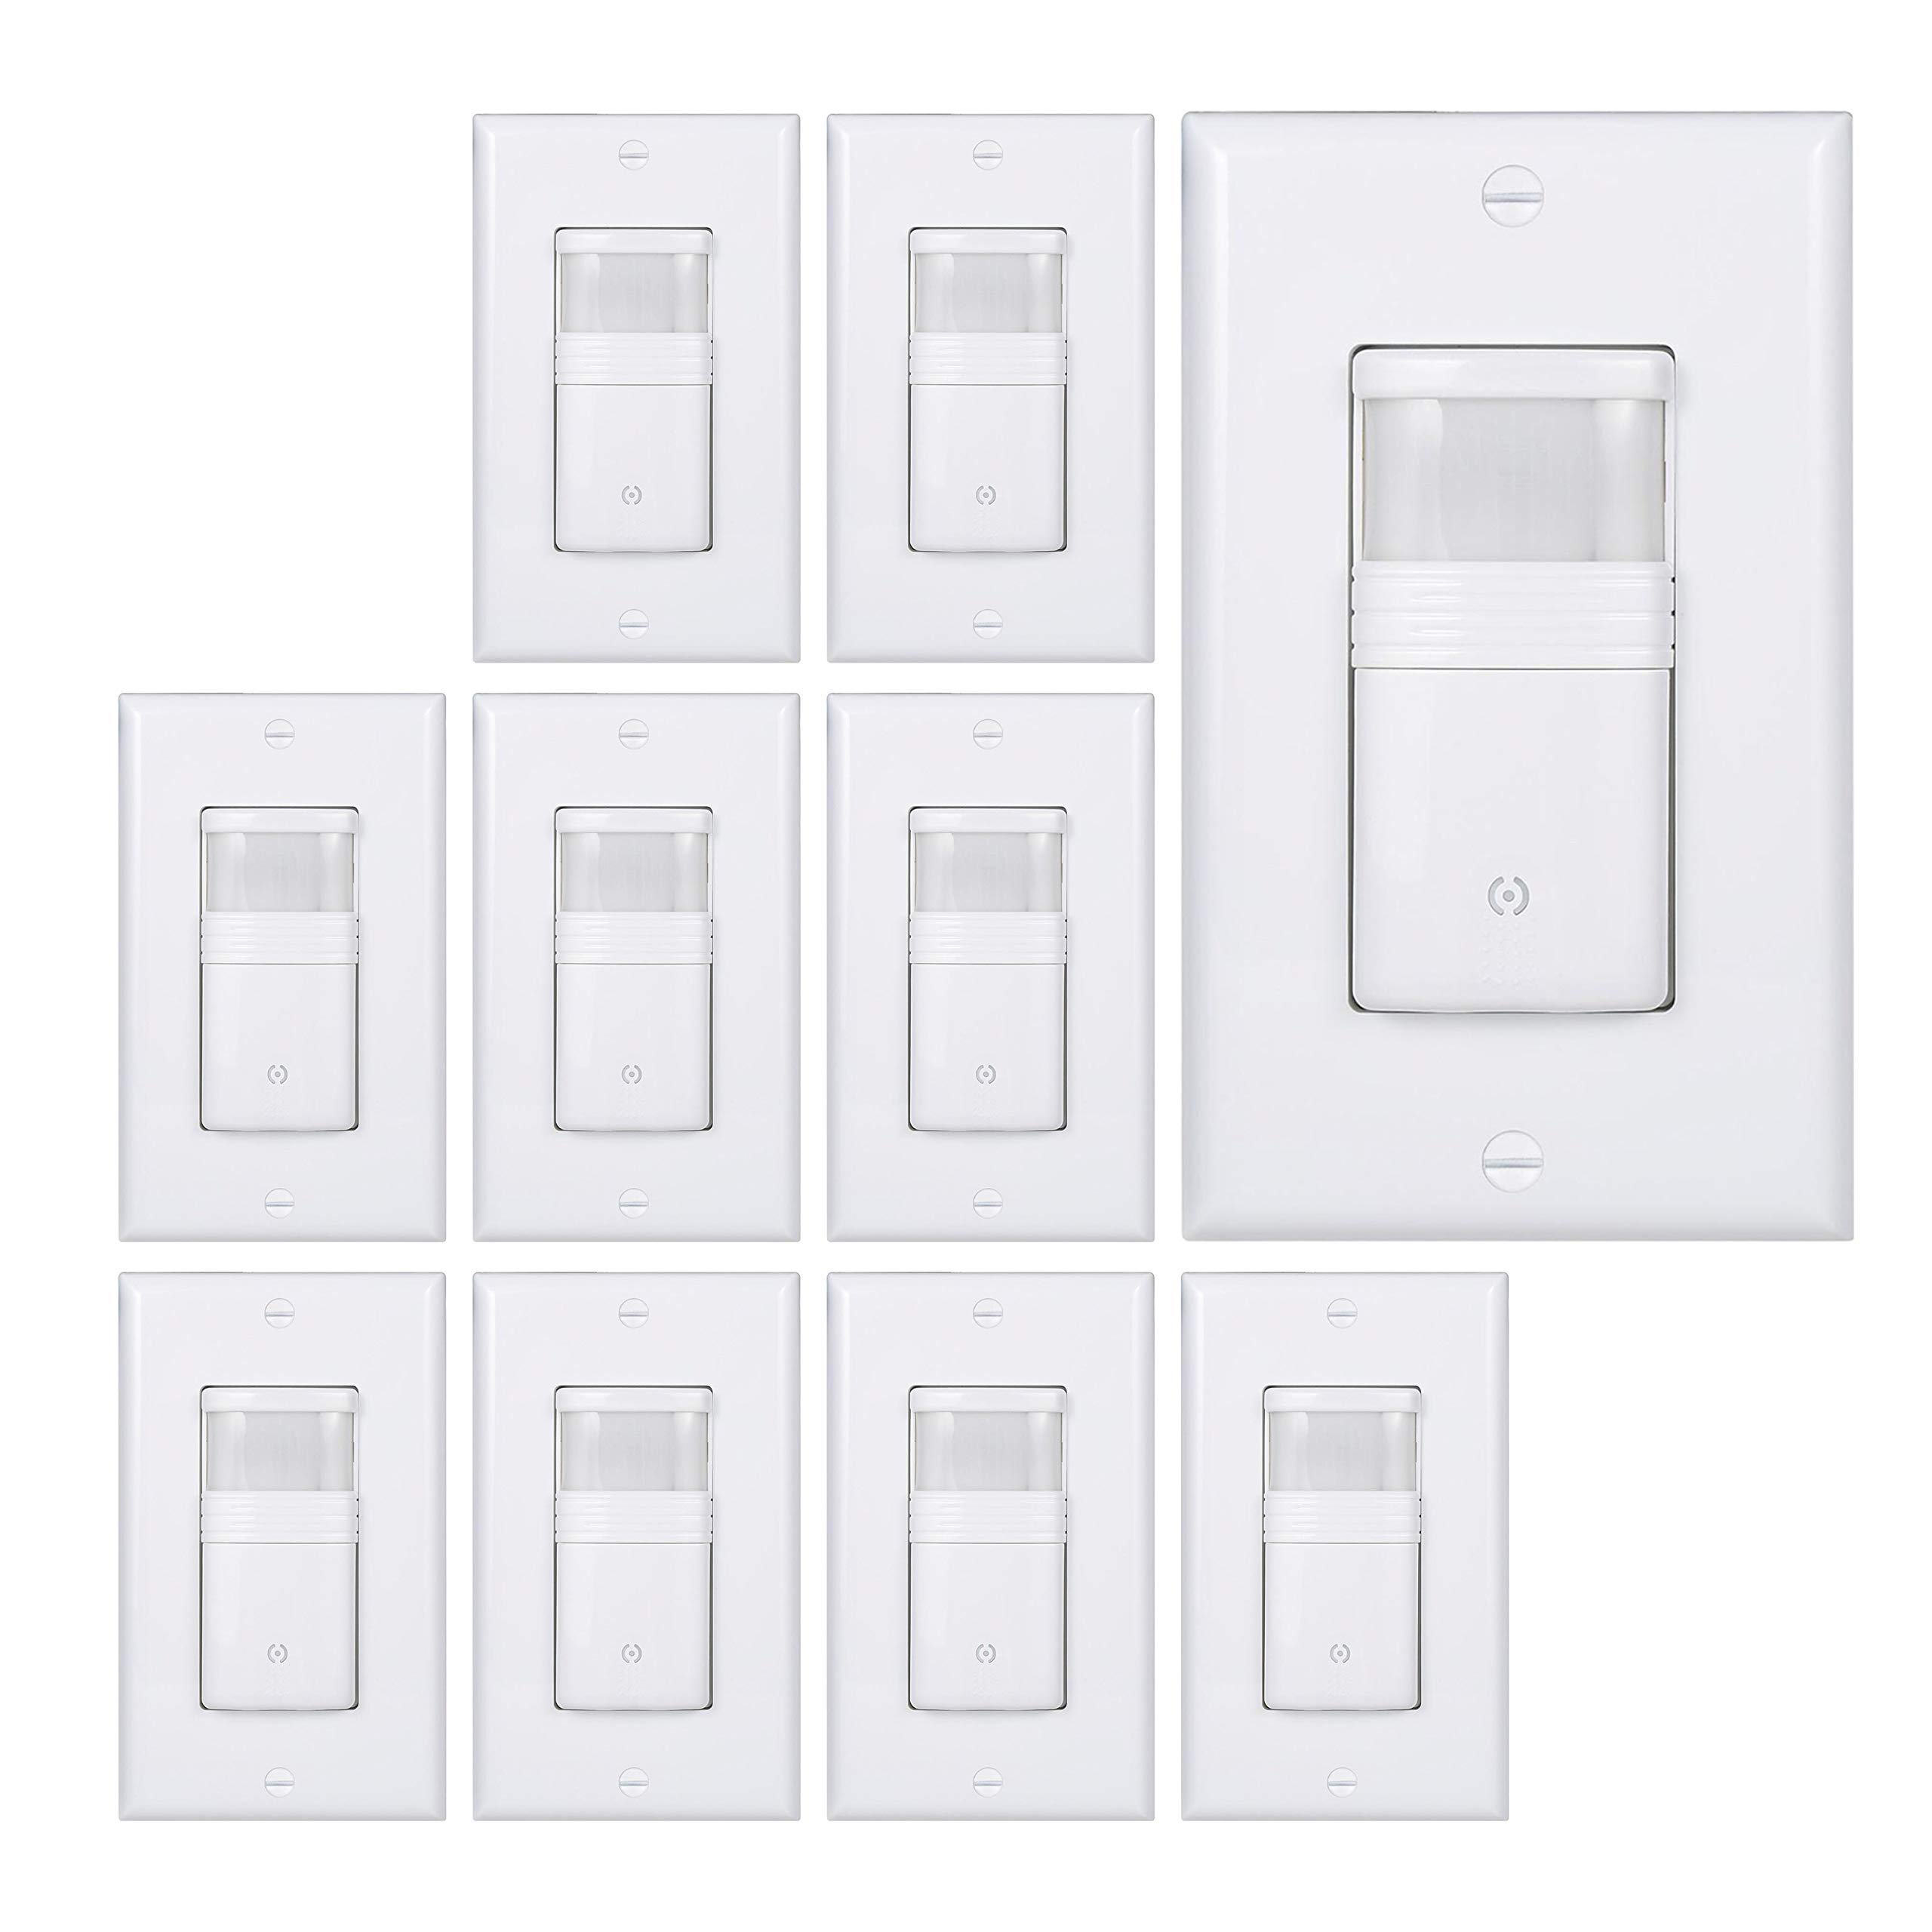 (Pack of 10) White Motion Sensor Light Switch – NEUTRAL Wire Required – Single Pole Only (Not 3-Way) – For Indoor Use – Vacancy & Occupancy Modes – Title 24, UL Certified – Adjustable Timer